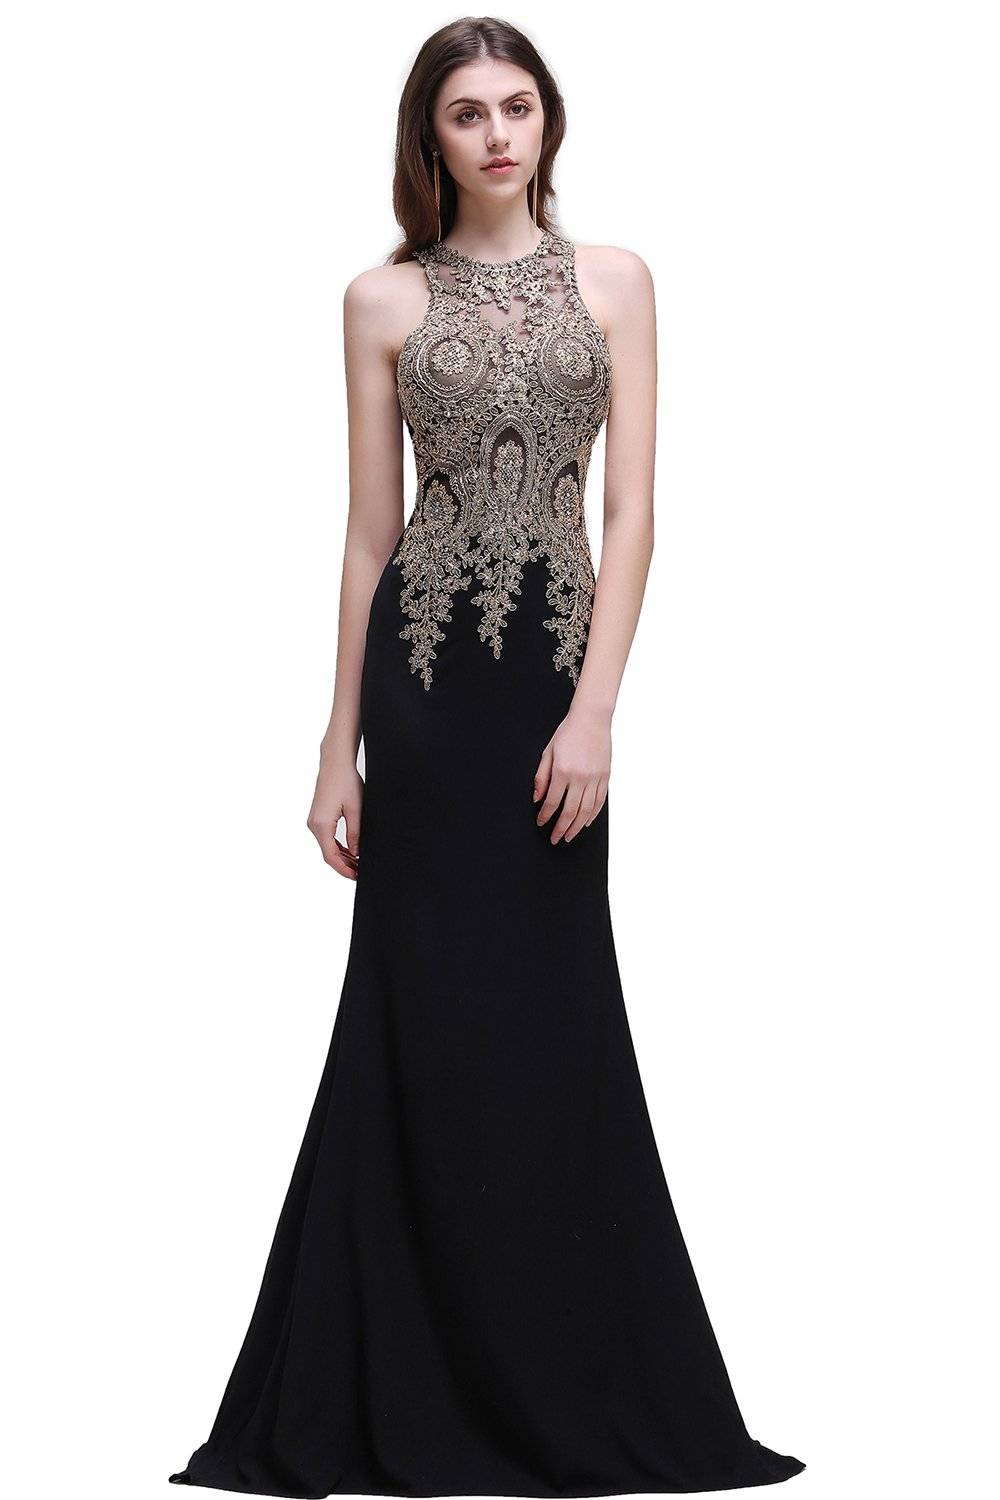 Crystals Applique Mermaid Sheer Top Evening Dress Formal Prom Gown